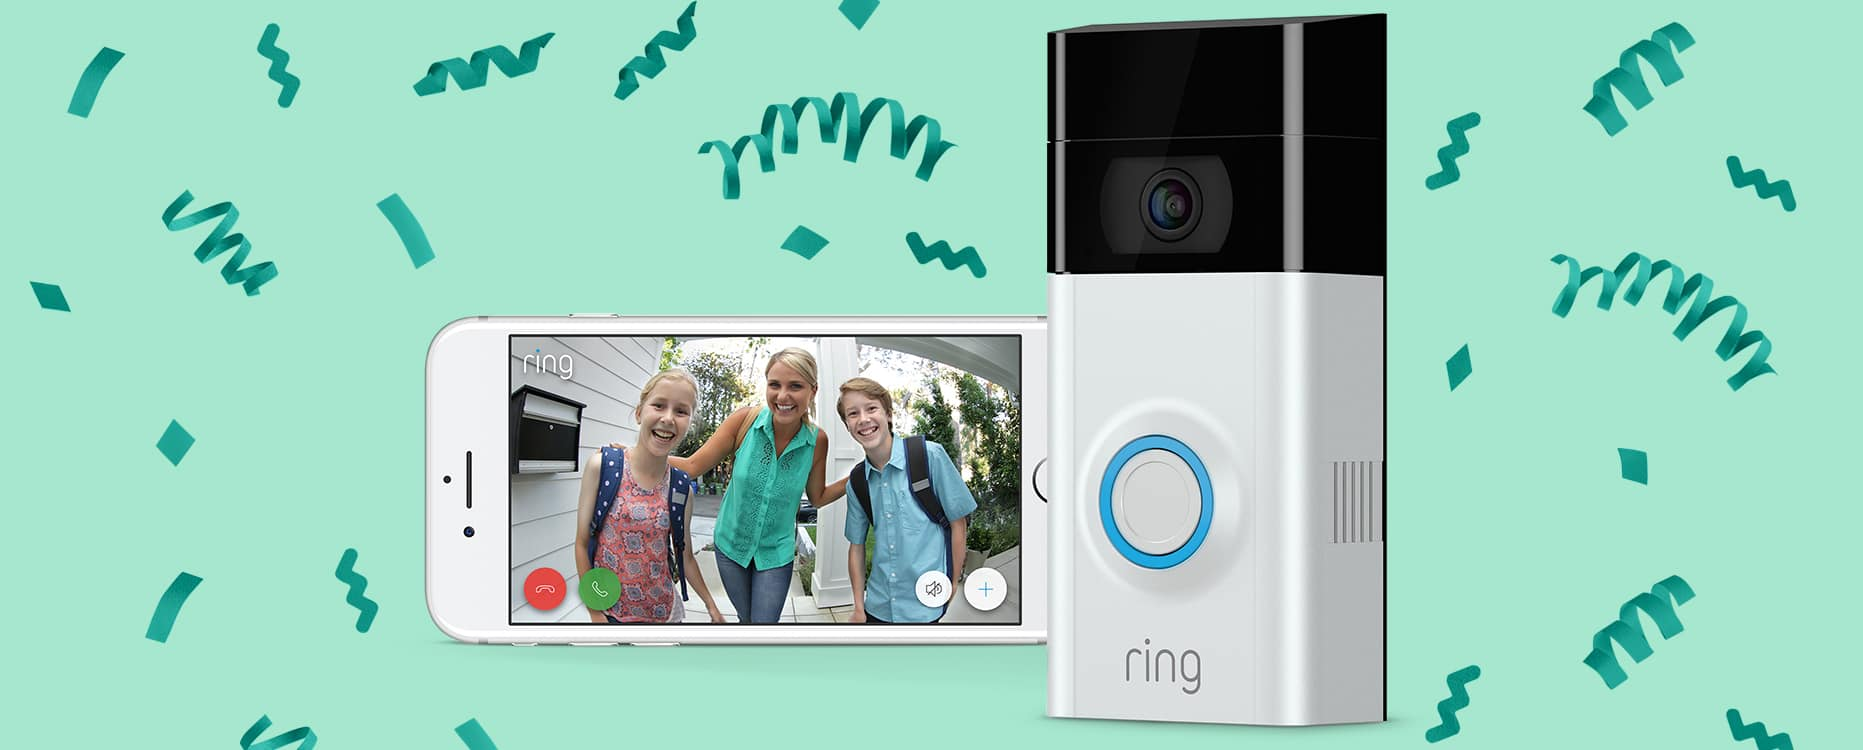 Amazon Treasure Truck (July 16th, 2018): Ring Video Doorbell 2. Pickup in select cities for $139 + tax (30% discounted)!